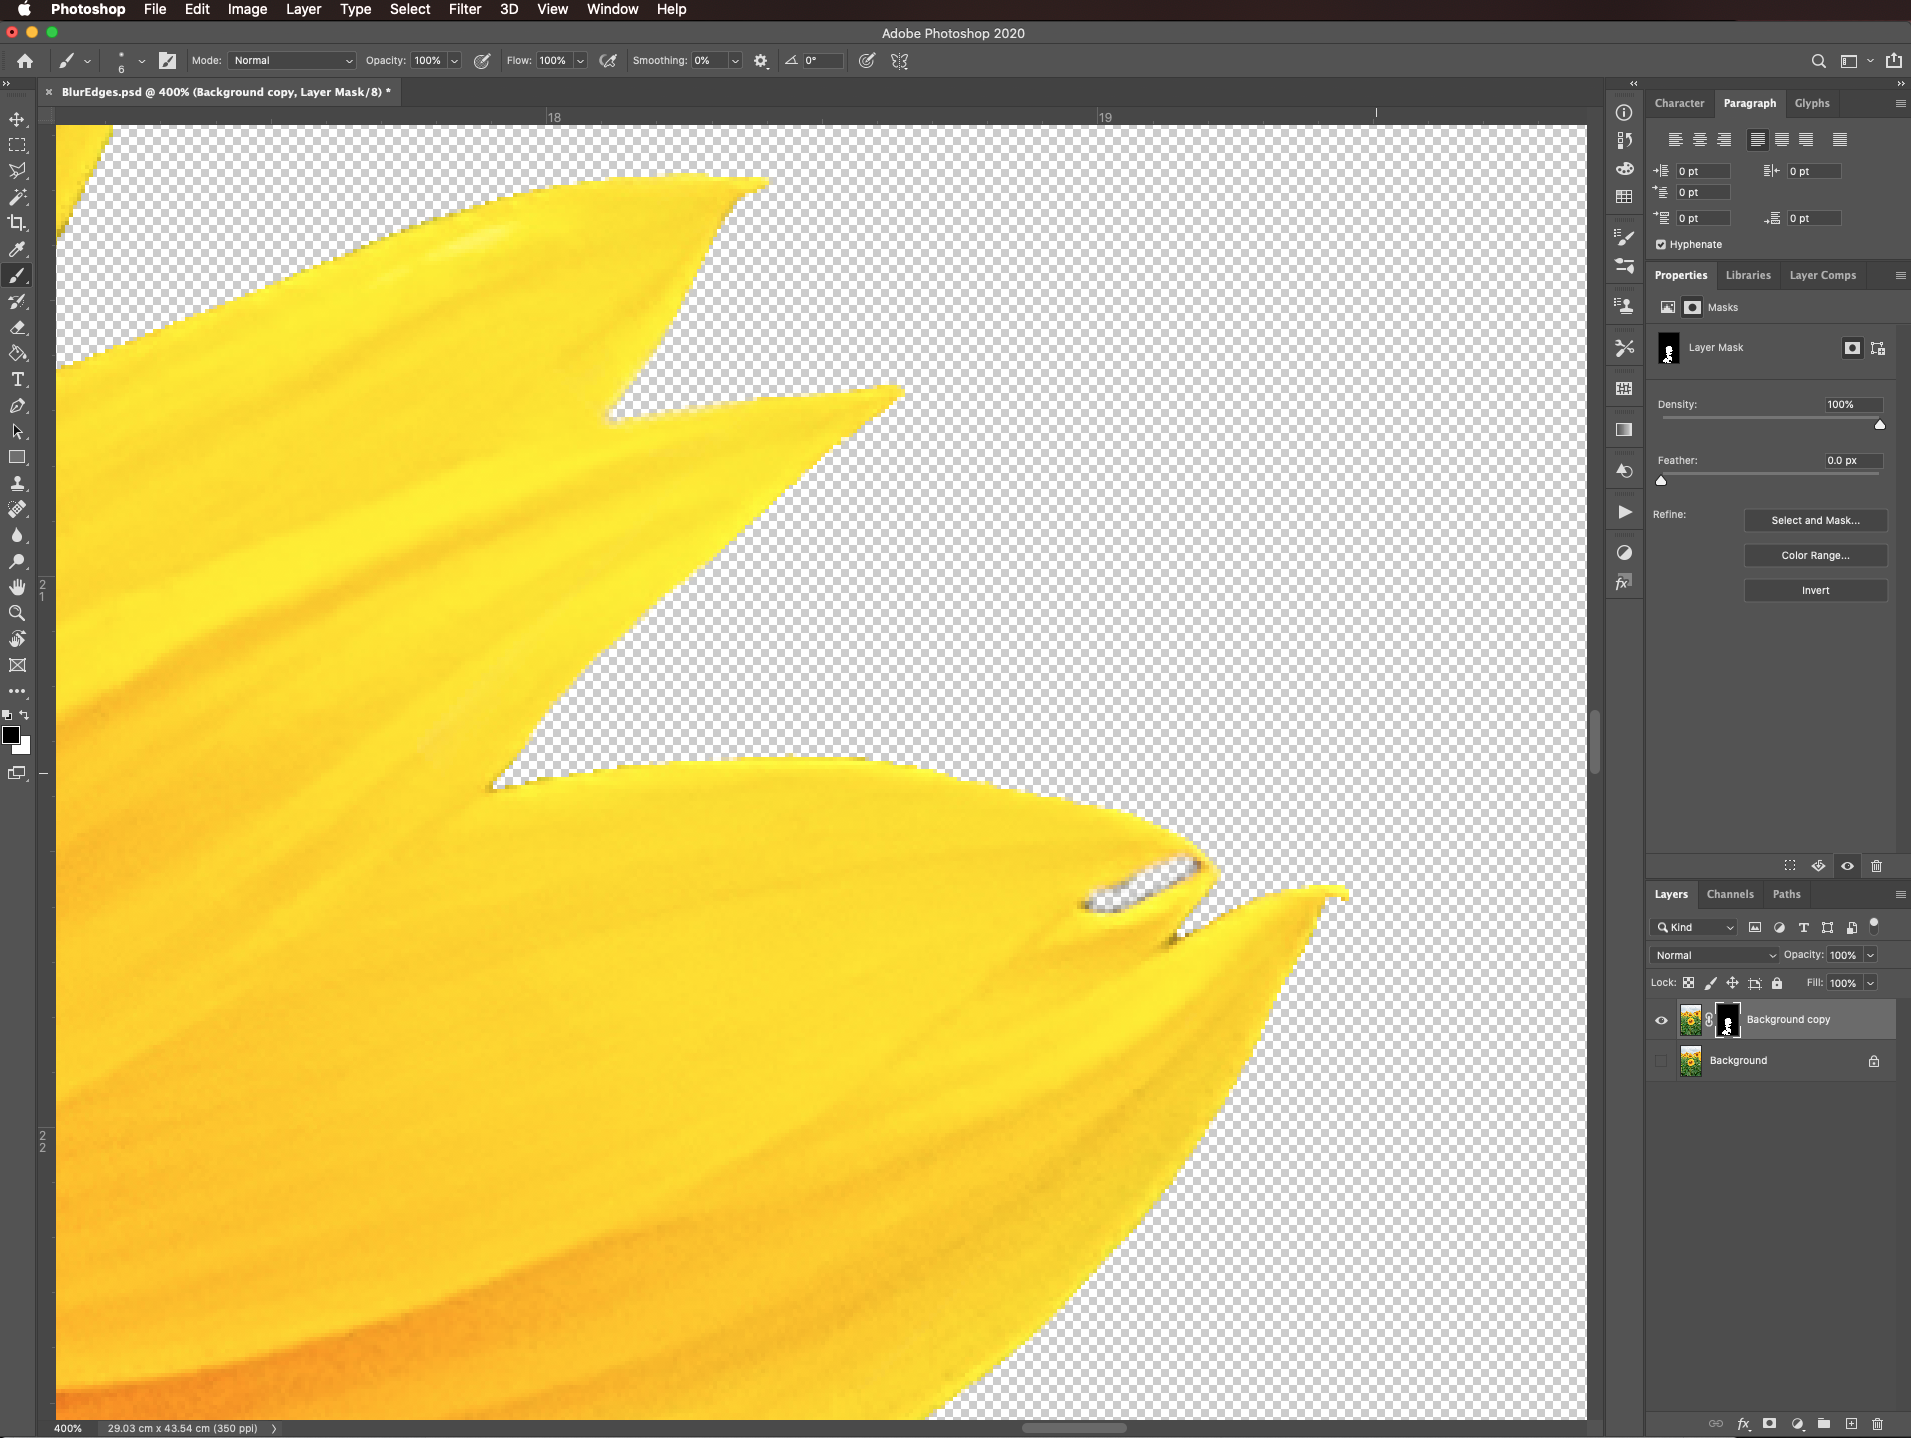 Cleaned edges in Photoshop